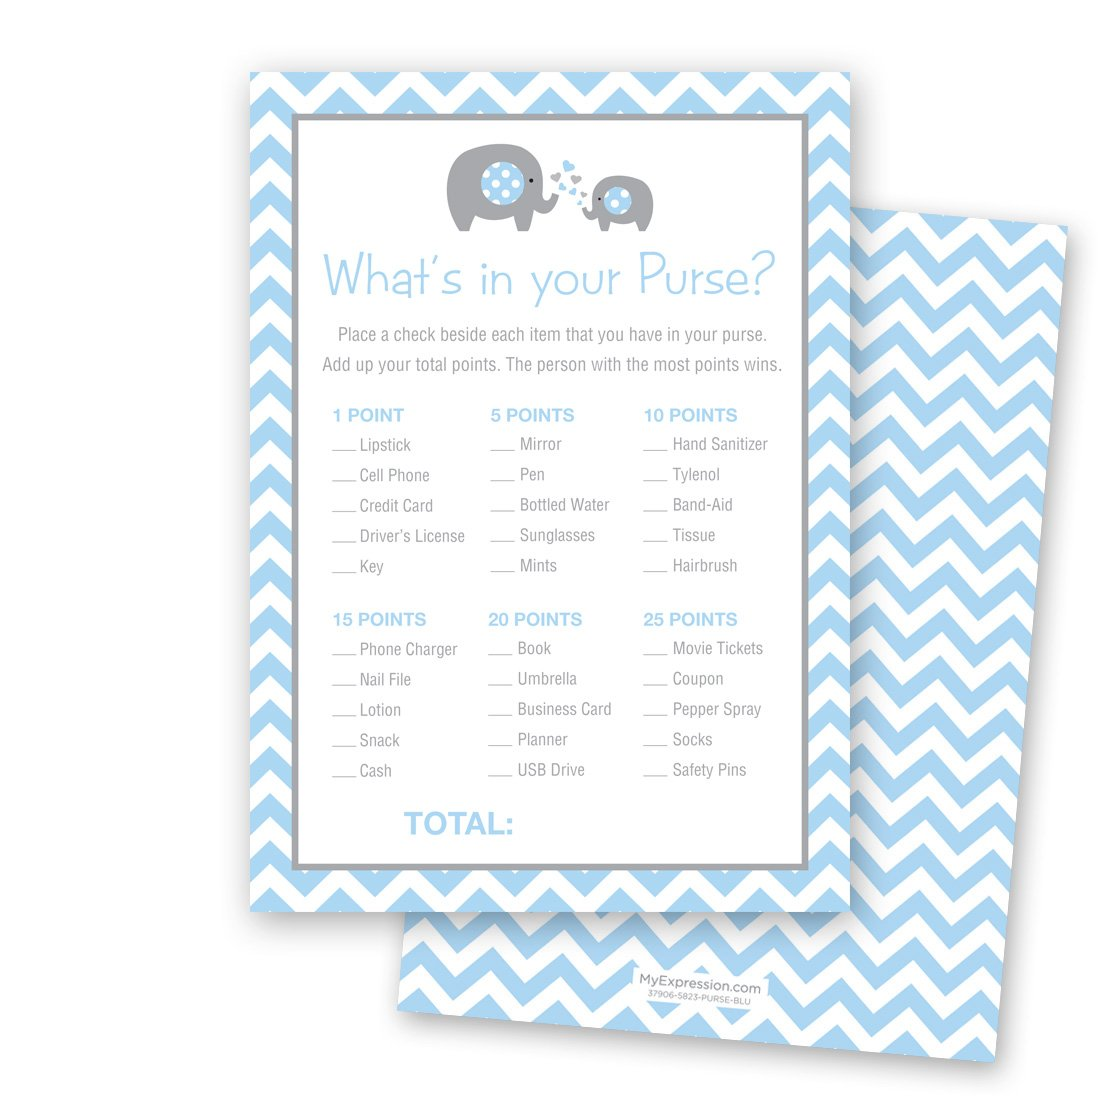 24 Chevron Elephant Baby Shower What's In Your Purse Game Cards (Blue)